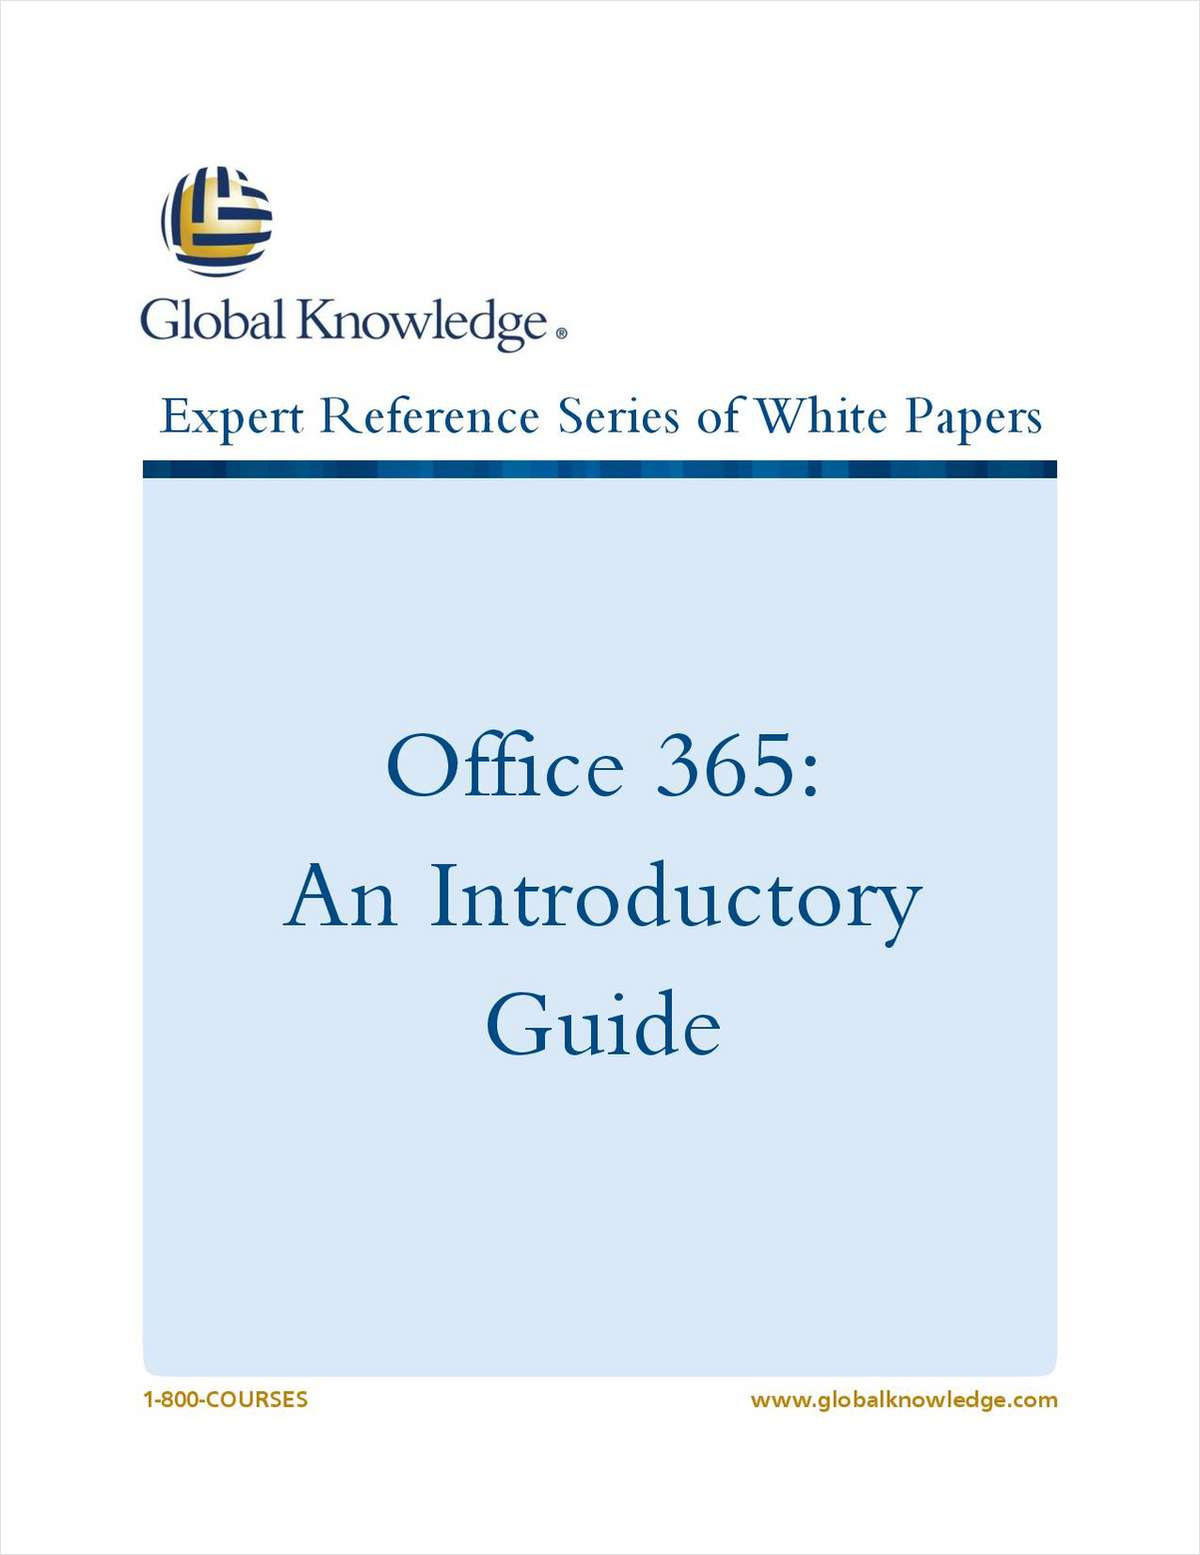 Office 365: An Introductory Guide